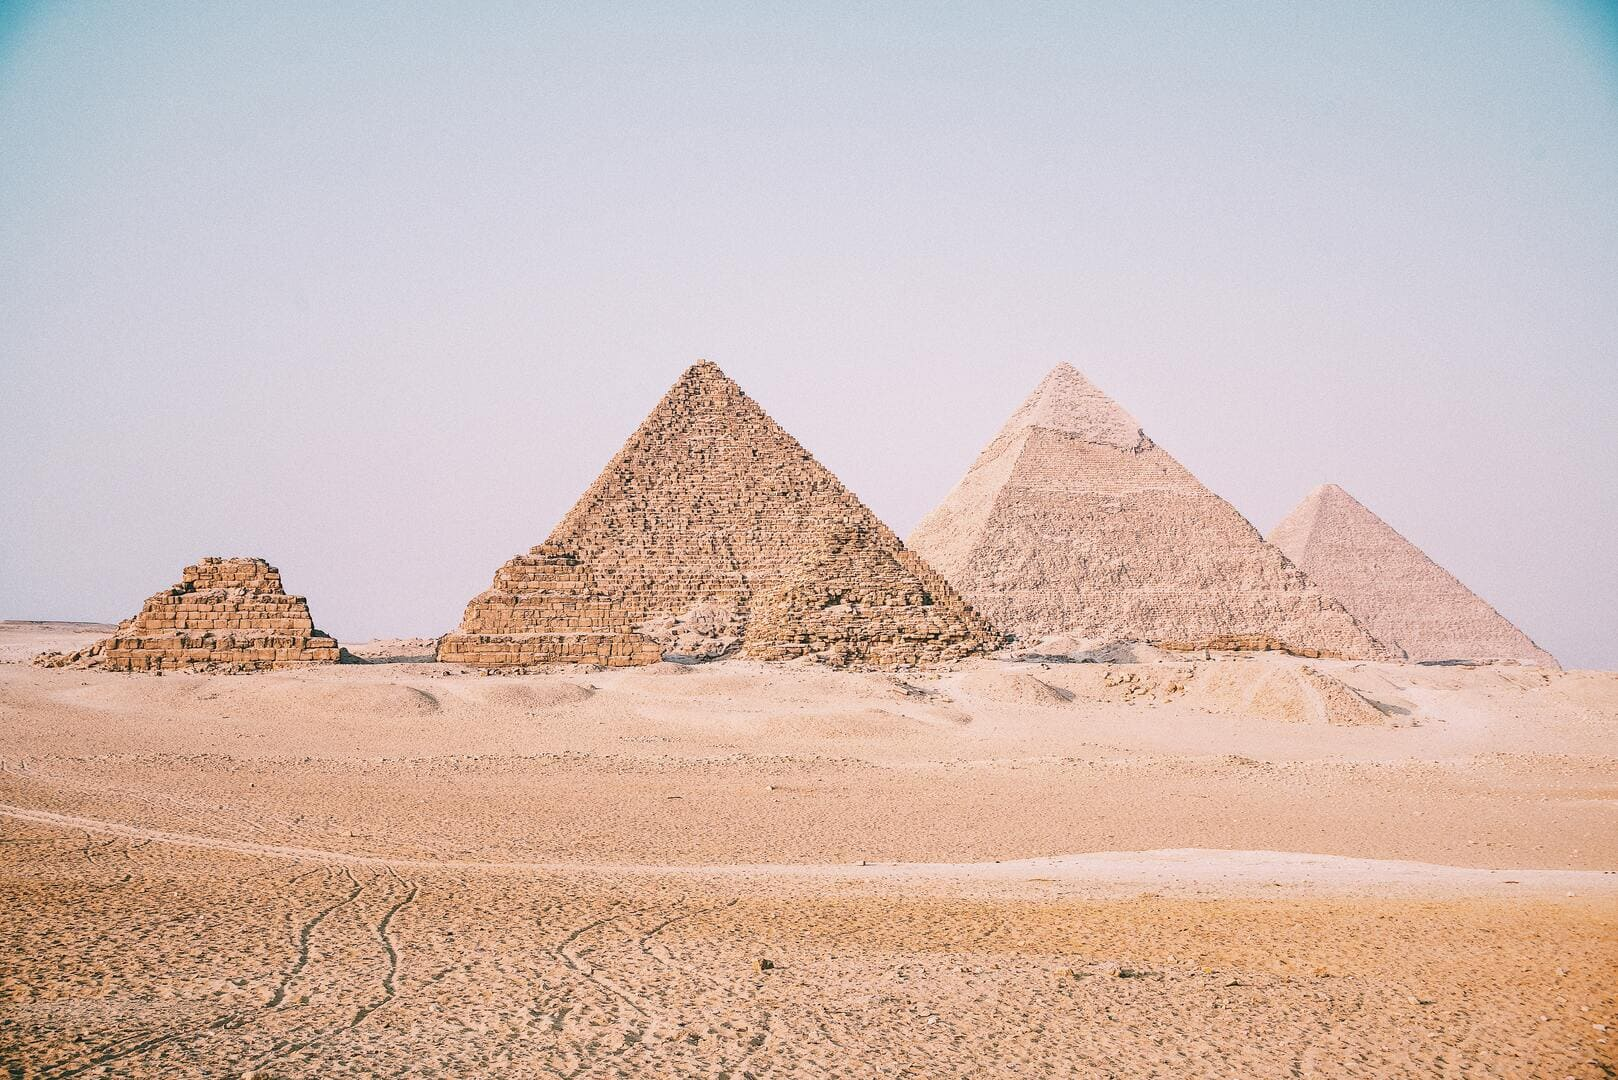 A scenic view of the pyramids in Egypt